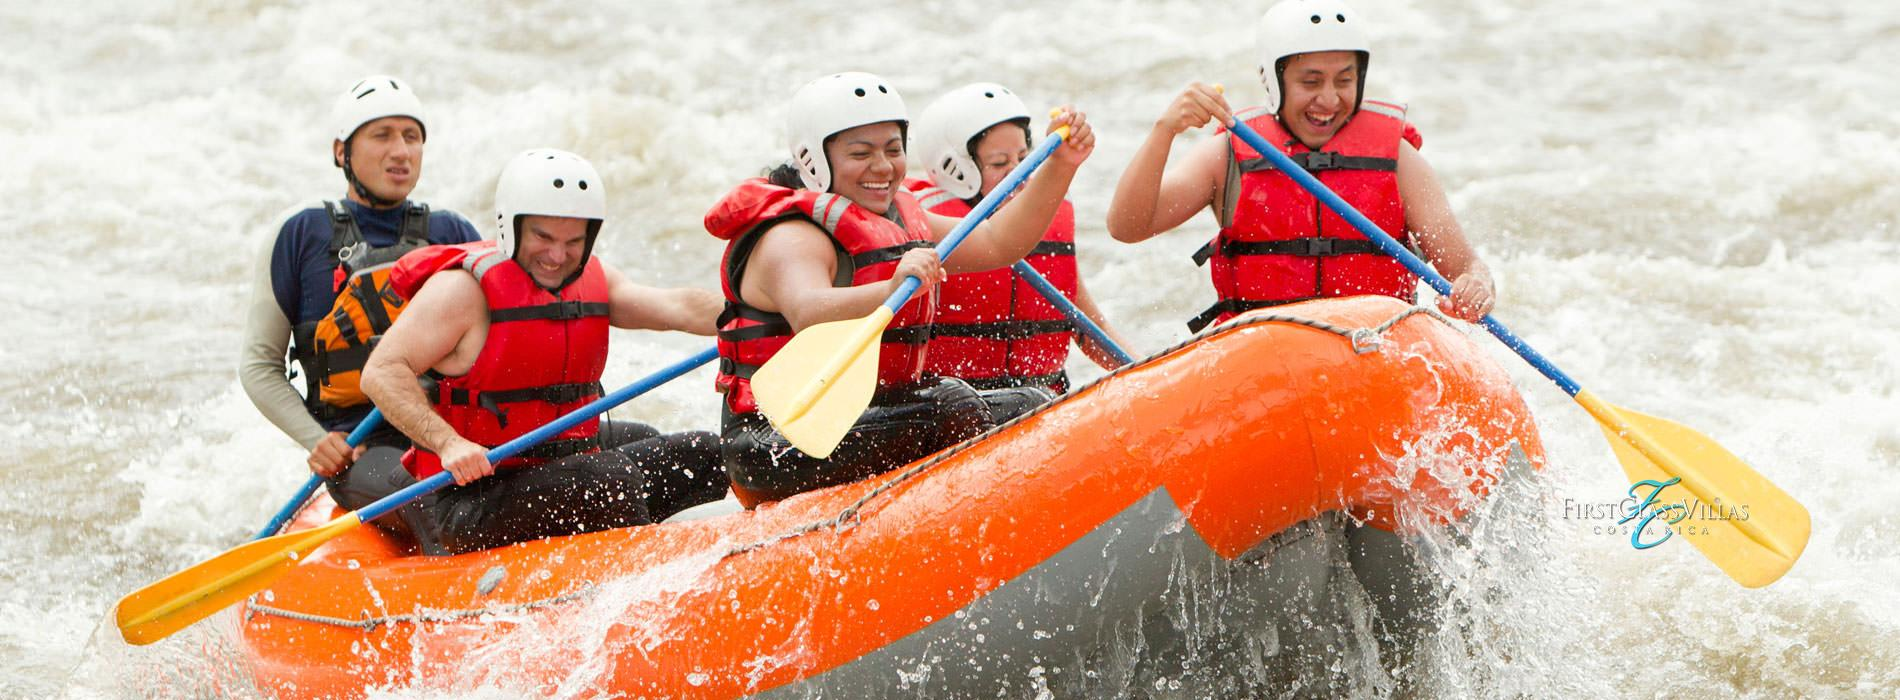 Costa-Rica-White-Water-Rafting-4